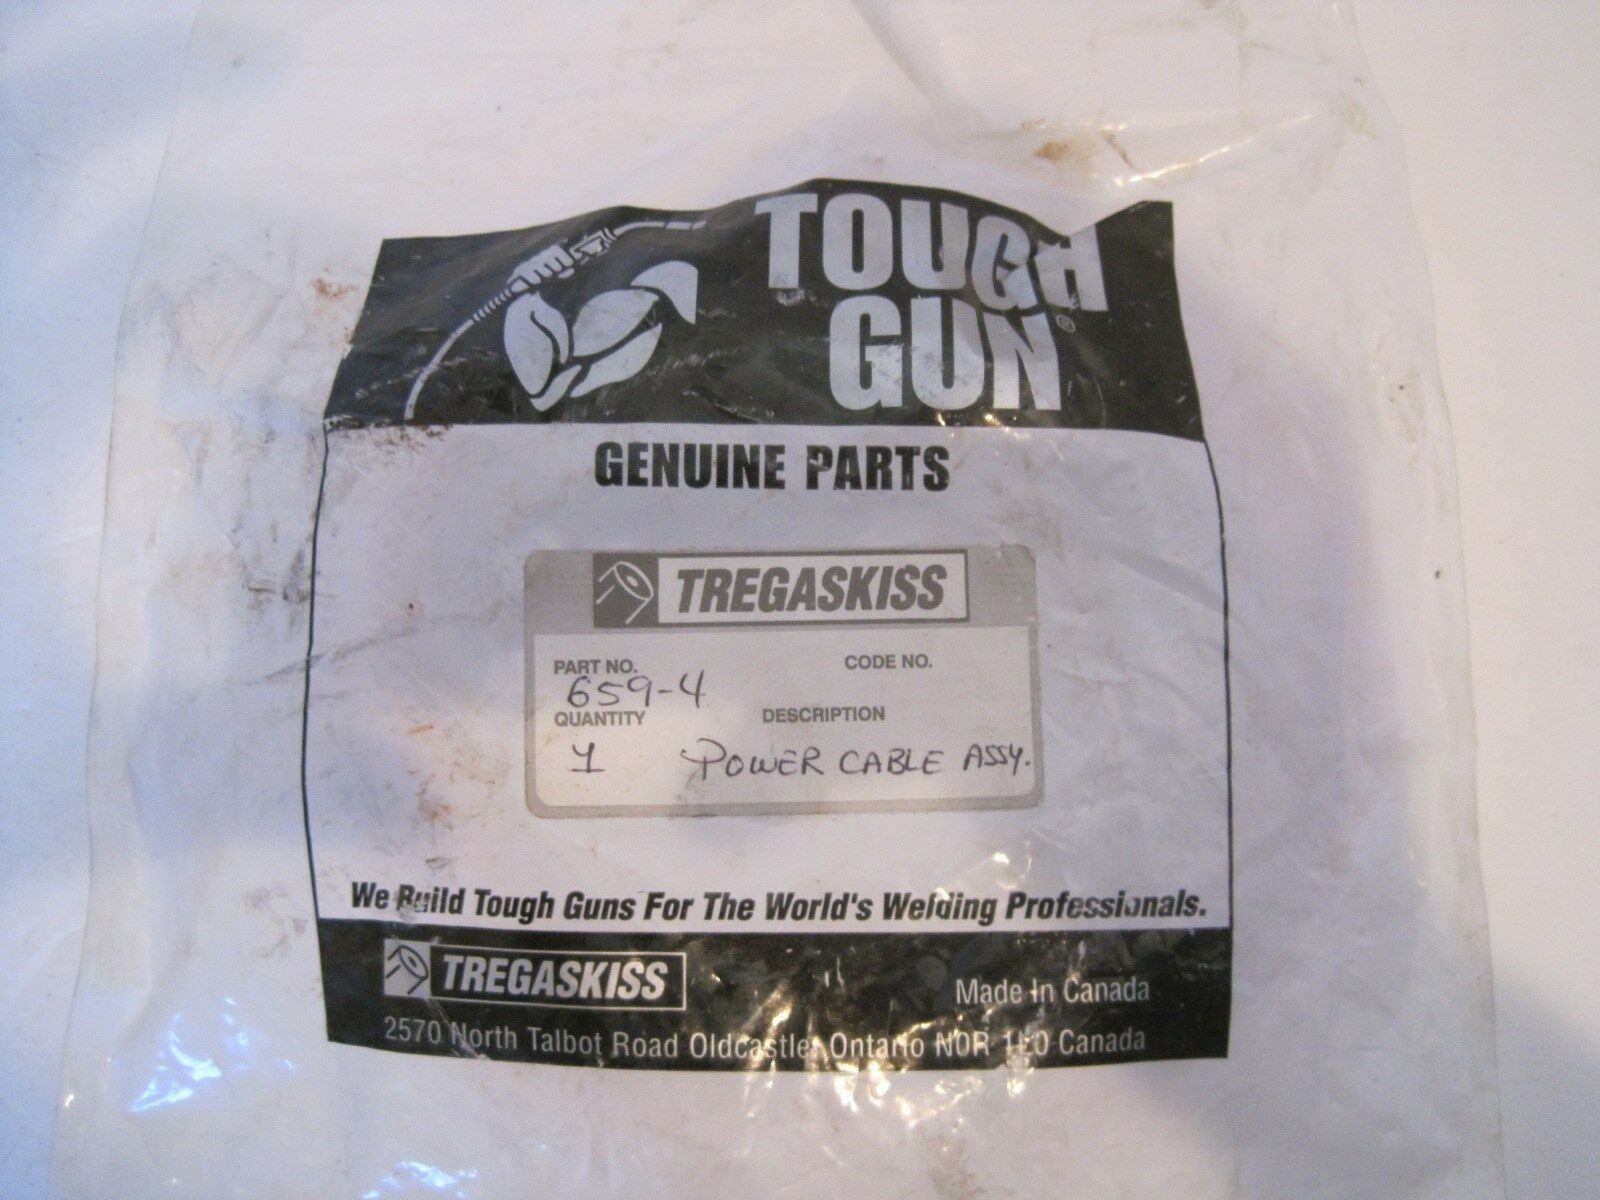 NEW TOUGH GUN TREGASKISS 659-4 POWER CABLE ASSY. 6594